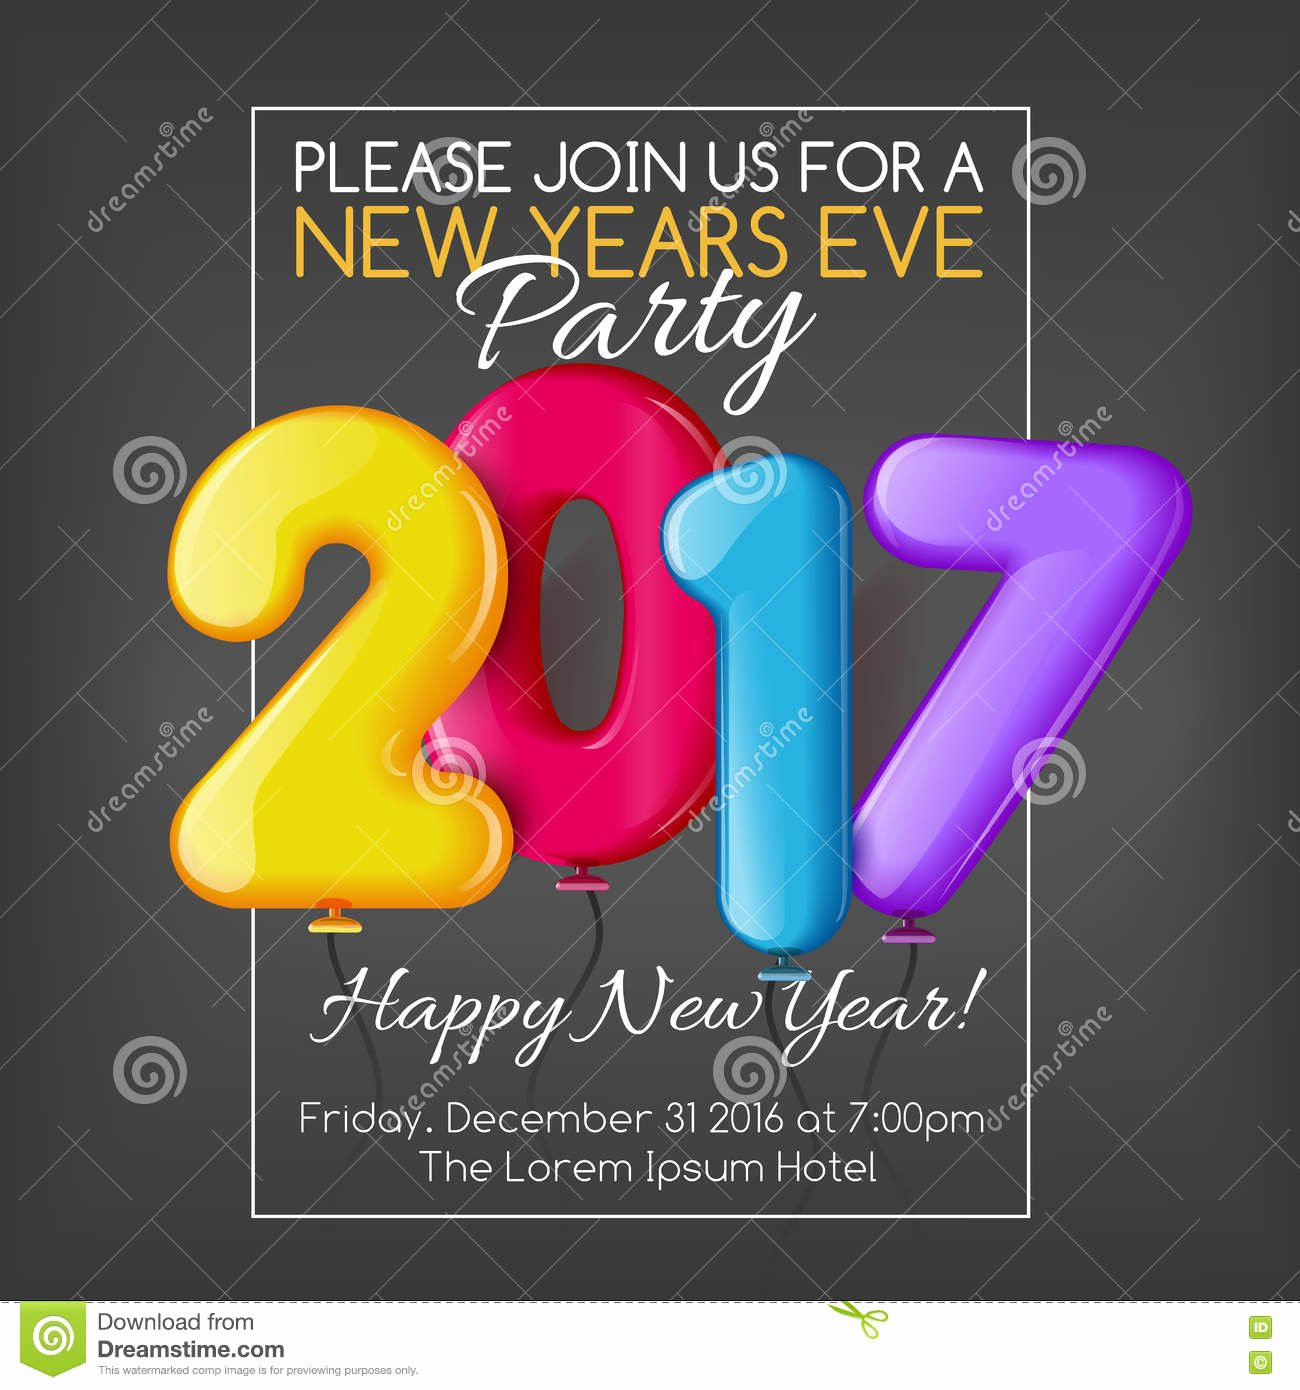 Merry Christmas and Happy New Year 2017 Party Invitation